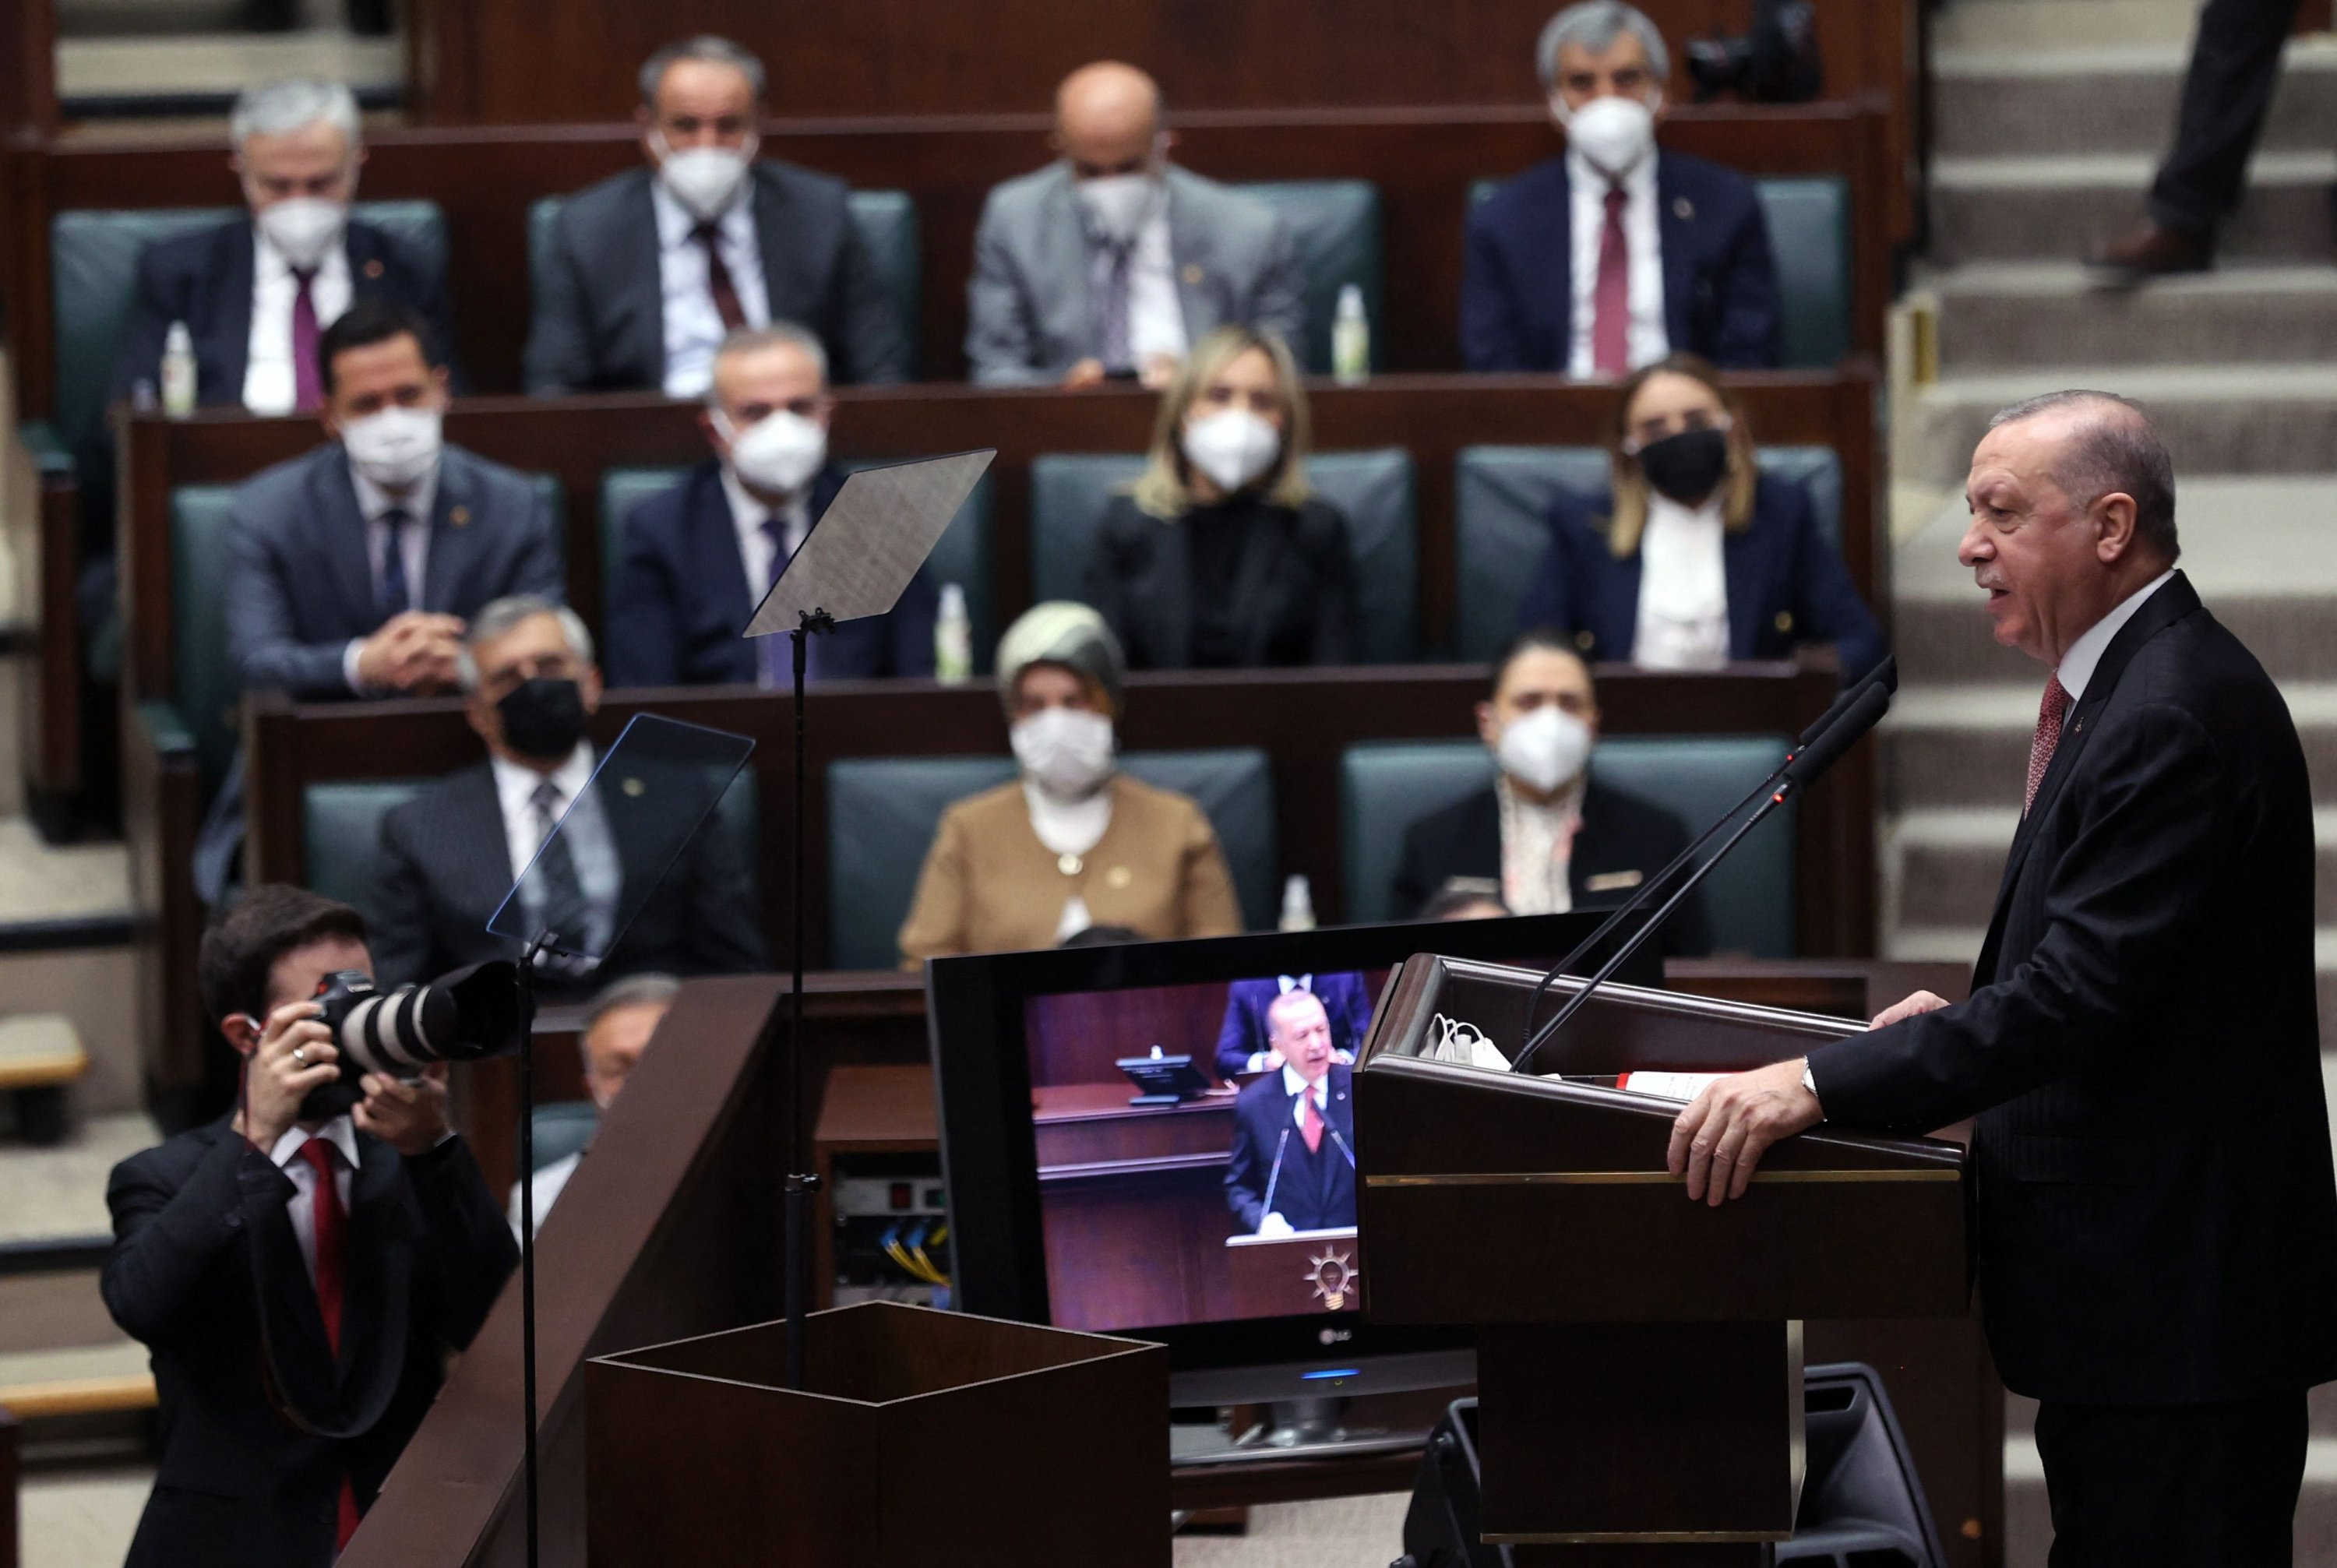 President and leader of the ruling Justice and Development Party (AK Party) Recep Tayyip Erdoğan speaks during his party's group meeting at the Grand National Assembly of Turkey (GNAT), in Ankara, Turkey, April 21, 2021. (AFP Photo)